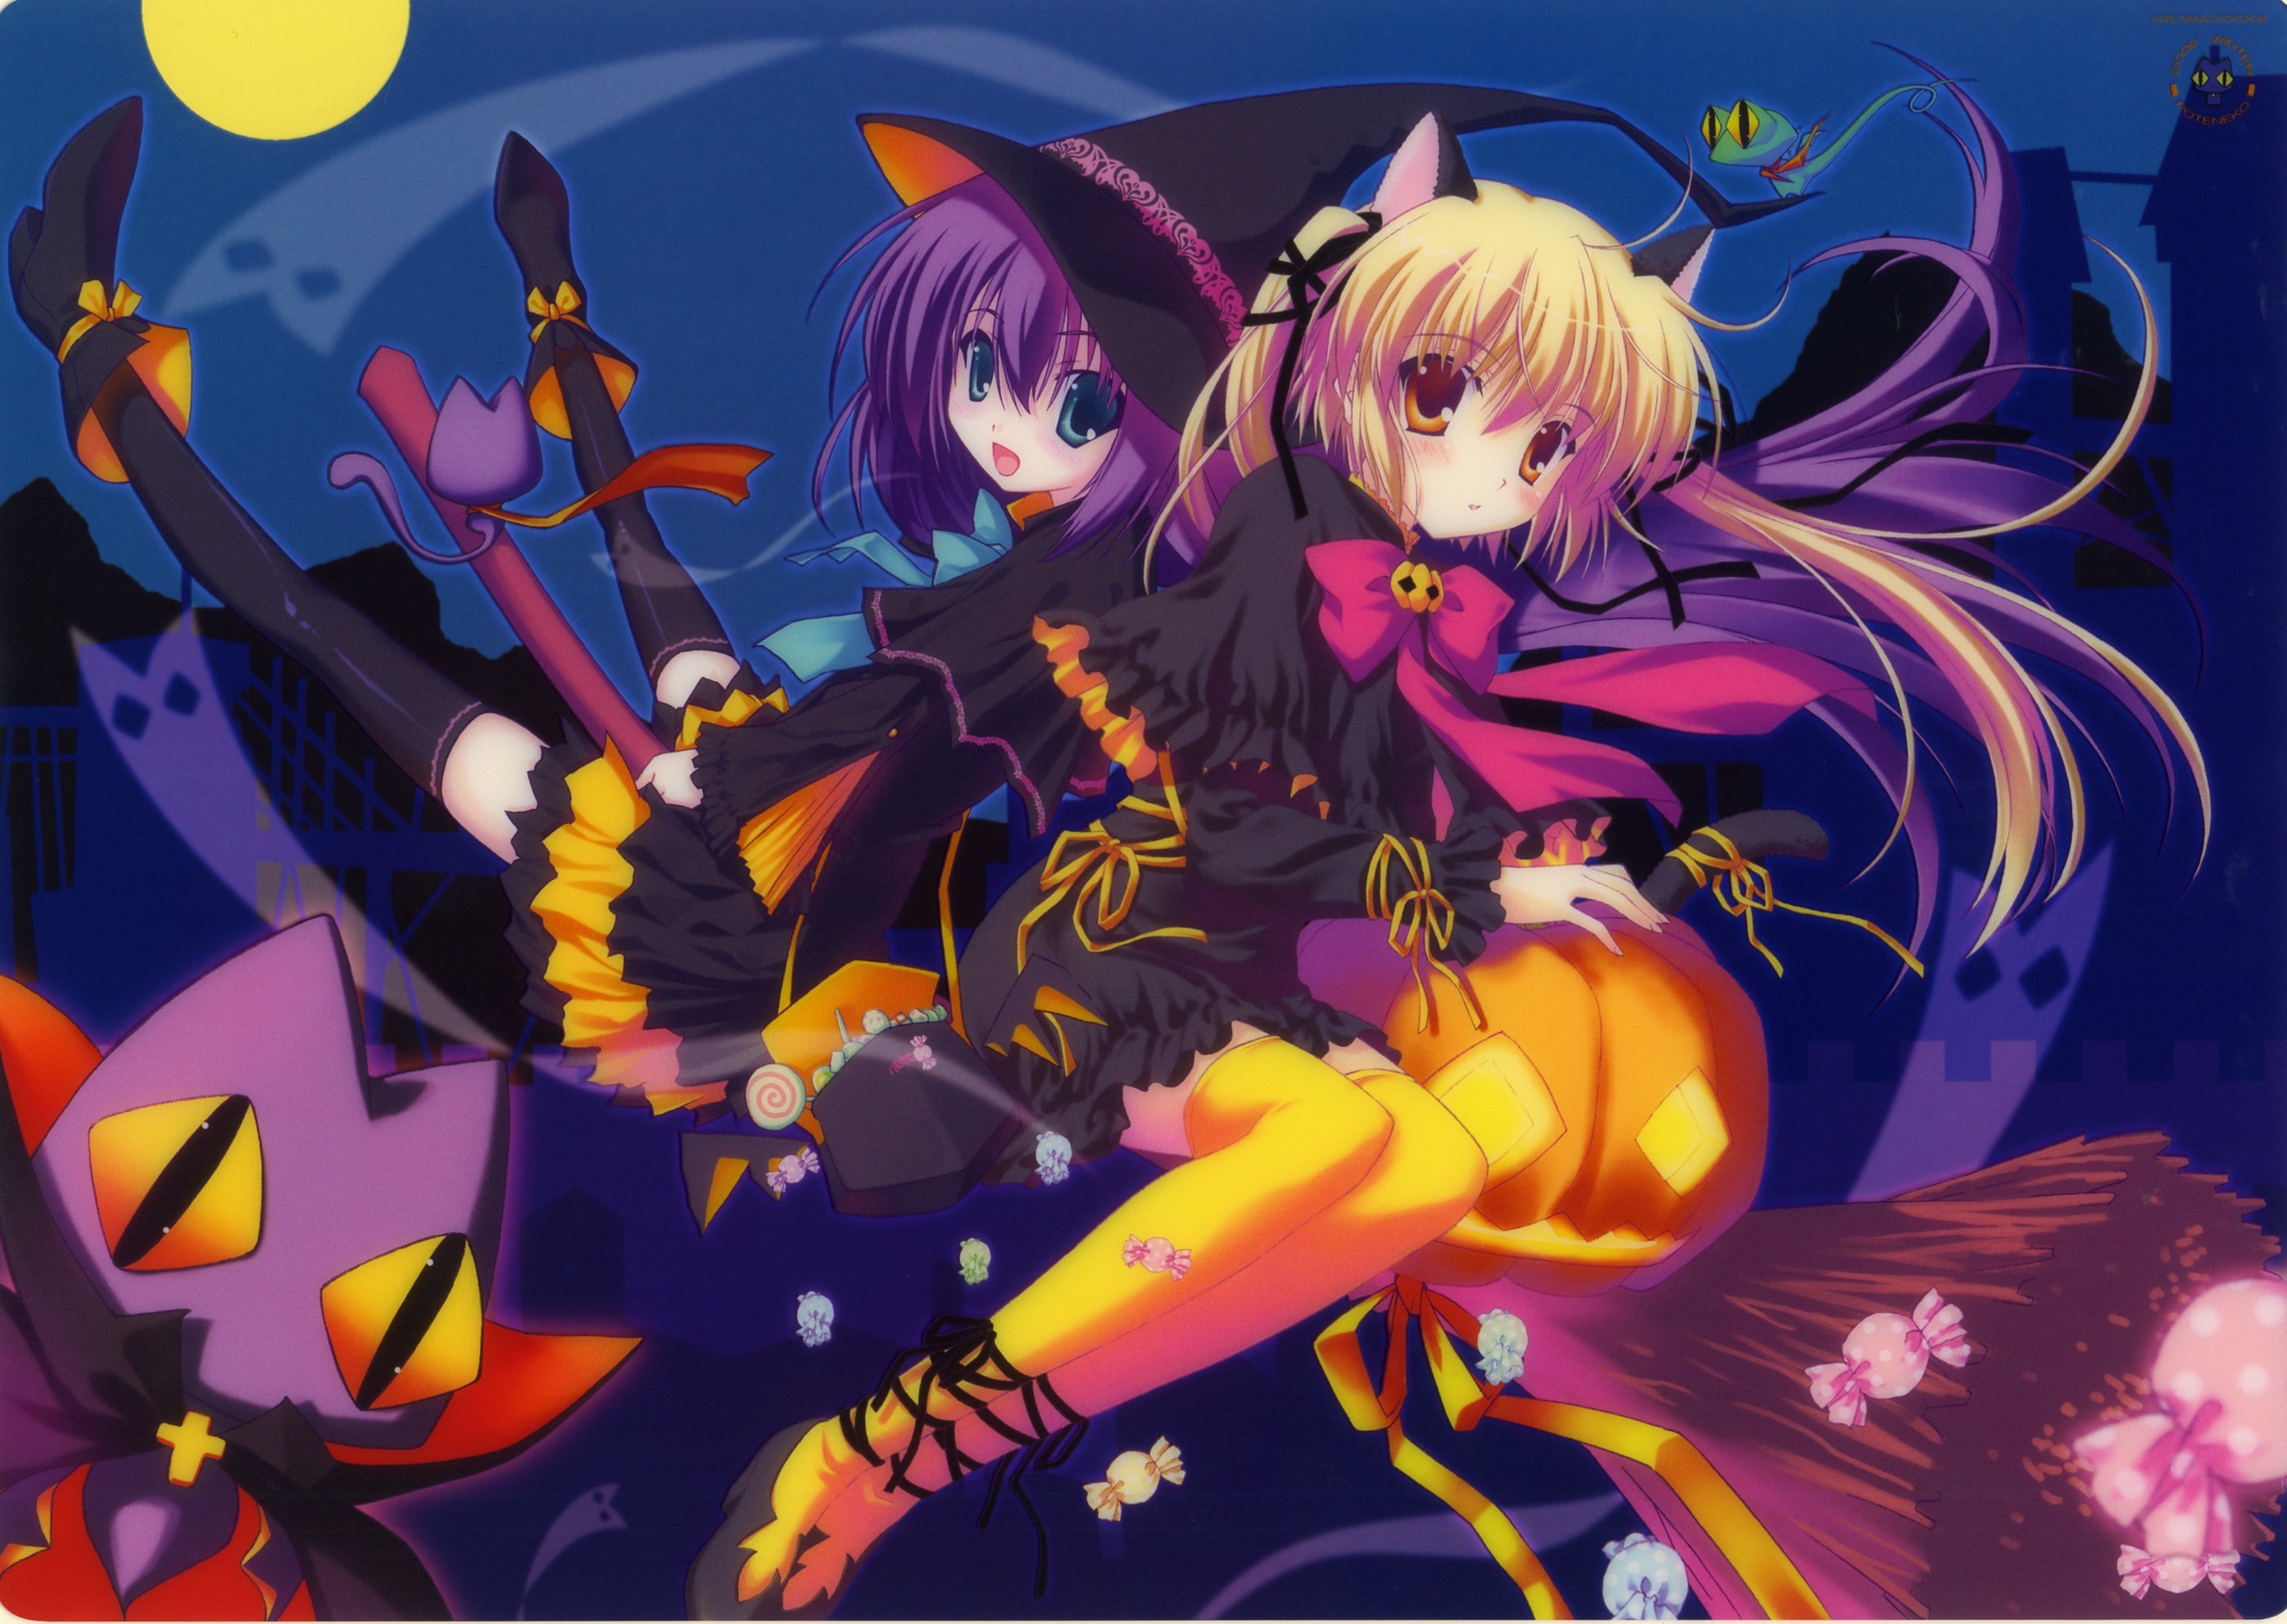 Halloween anime girls nekomimi artwork HD Wallpaper